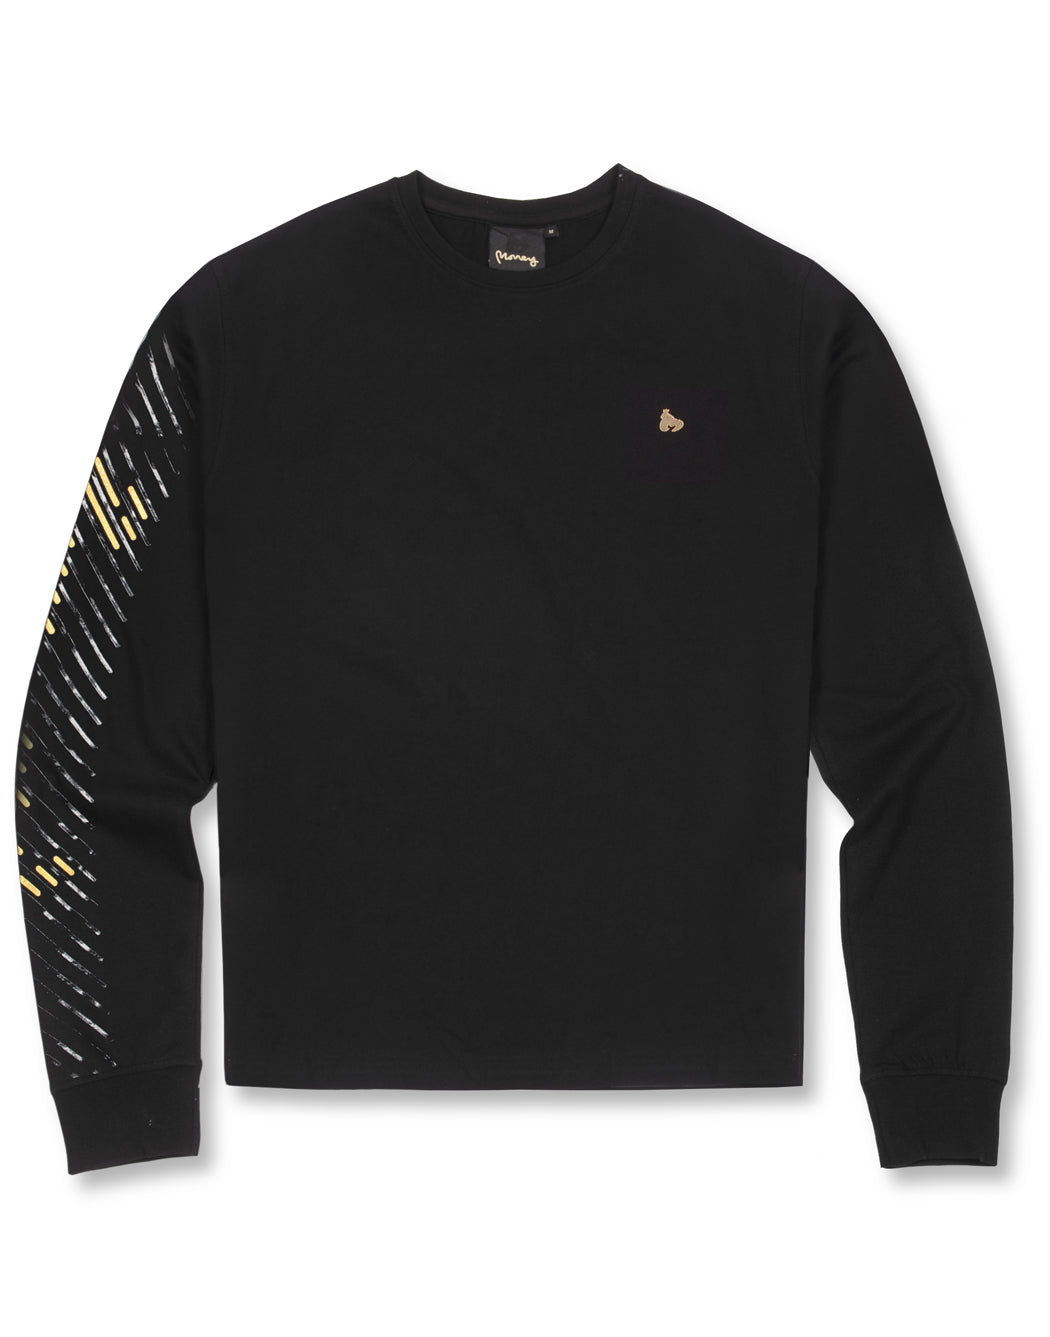 APE OUT GRID LONG SLEEVE TEE